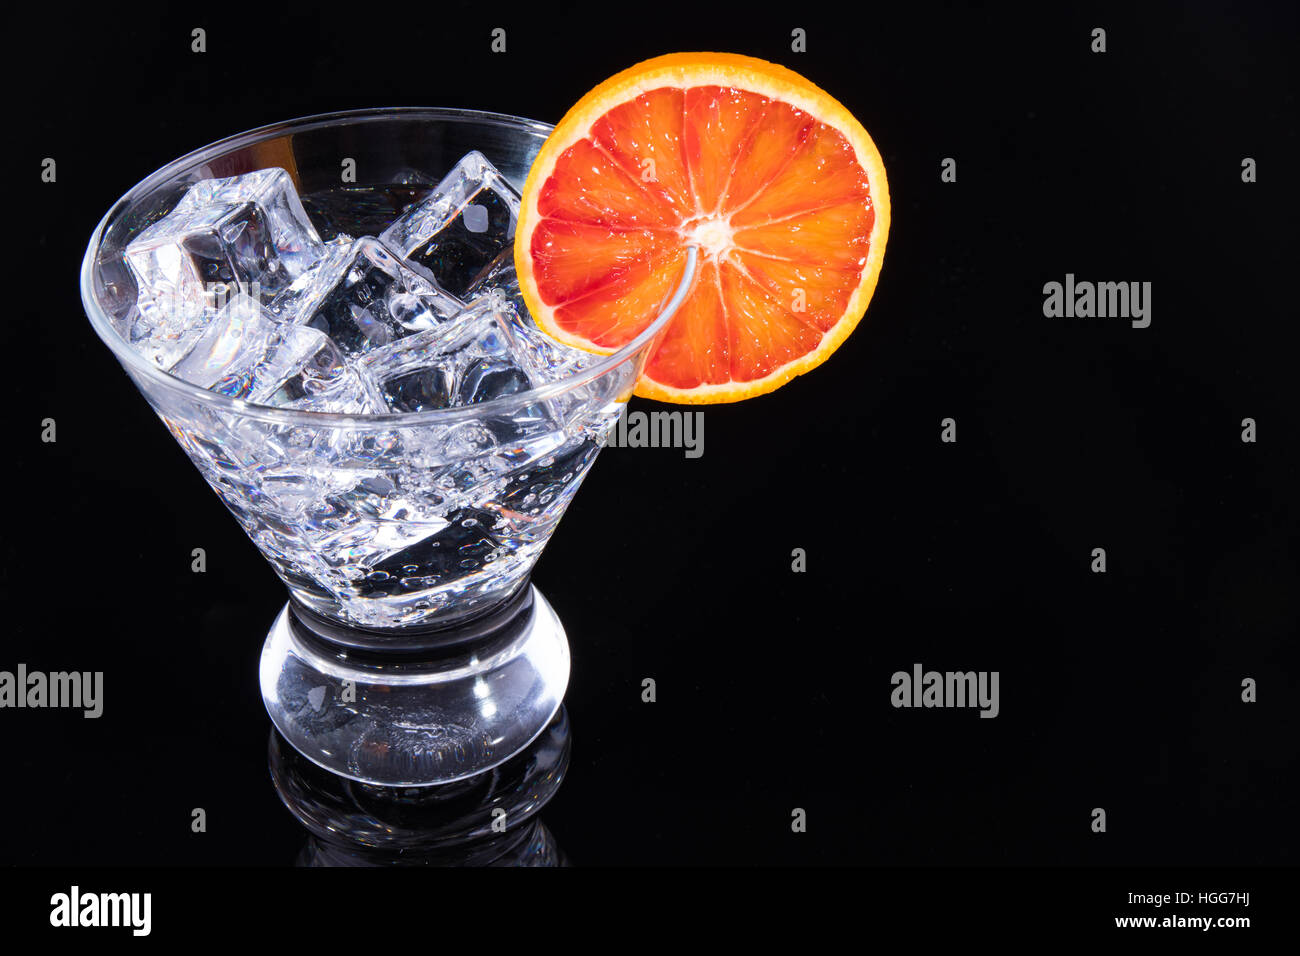 Sparkling beverage in a martini glass with a blood orange slice on a black background - Stock Image